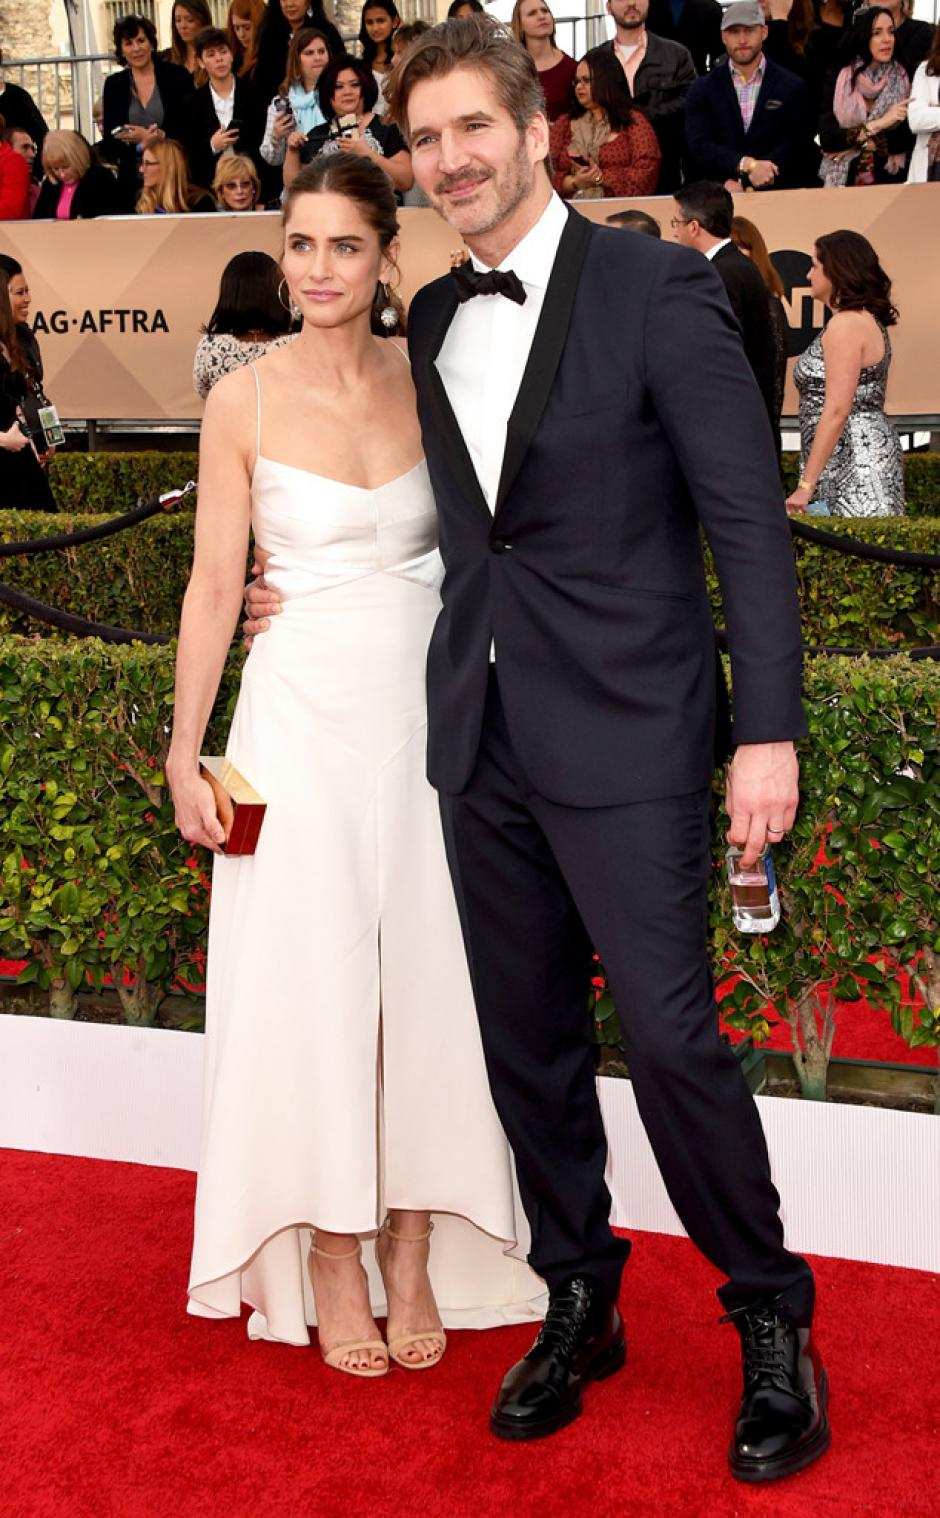 La actriz Amanda Peet y David Benioff asisten a la 22ª Screen Actors Guild Awards en el Auditoriuo Shrine. (Foto: AFP)